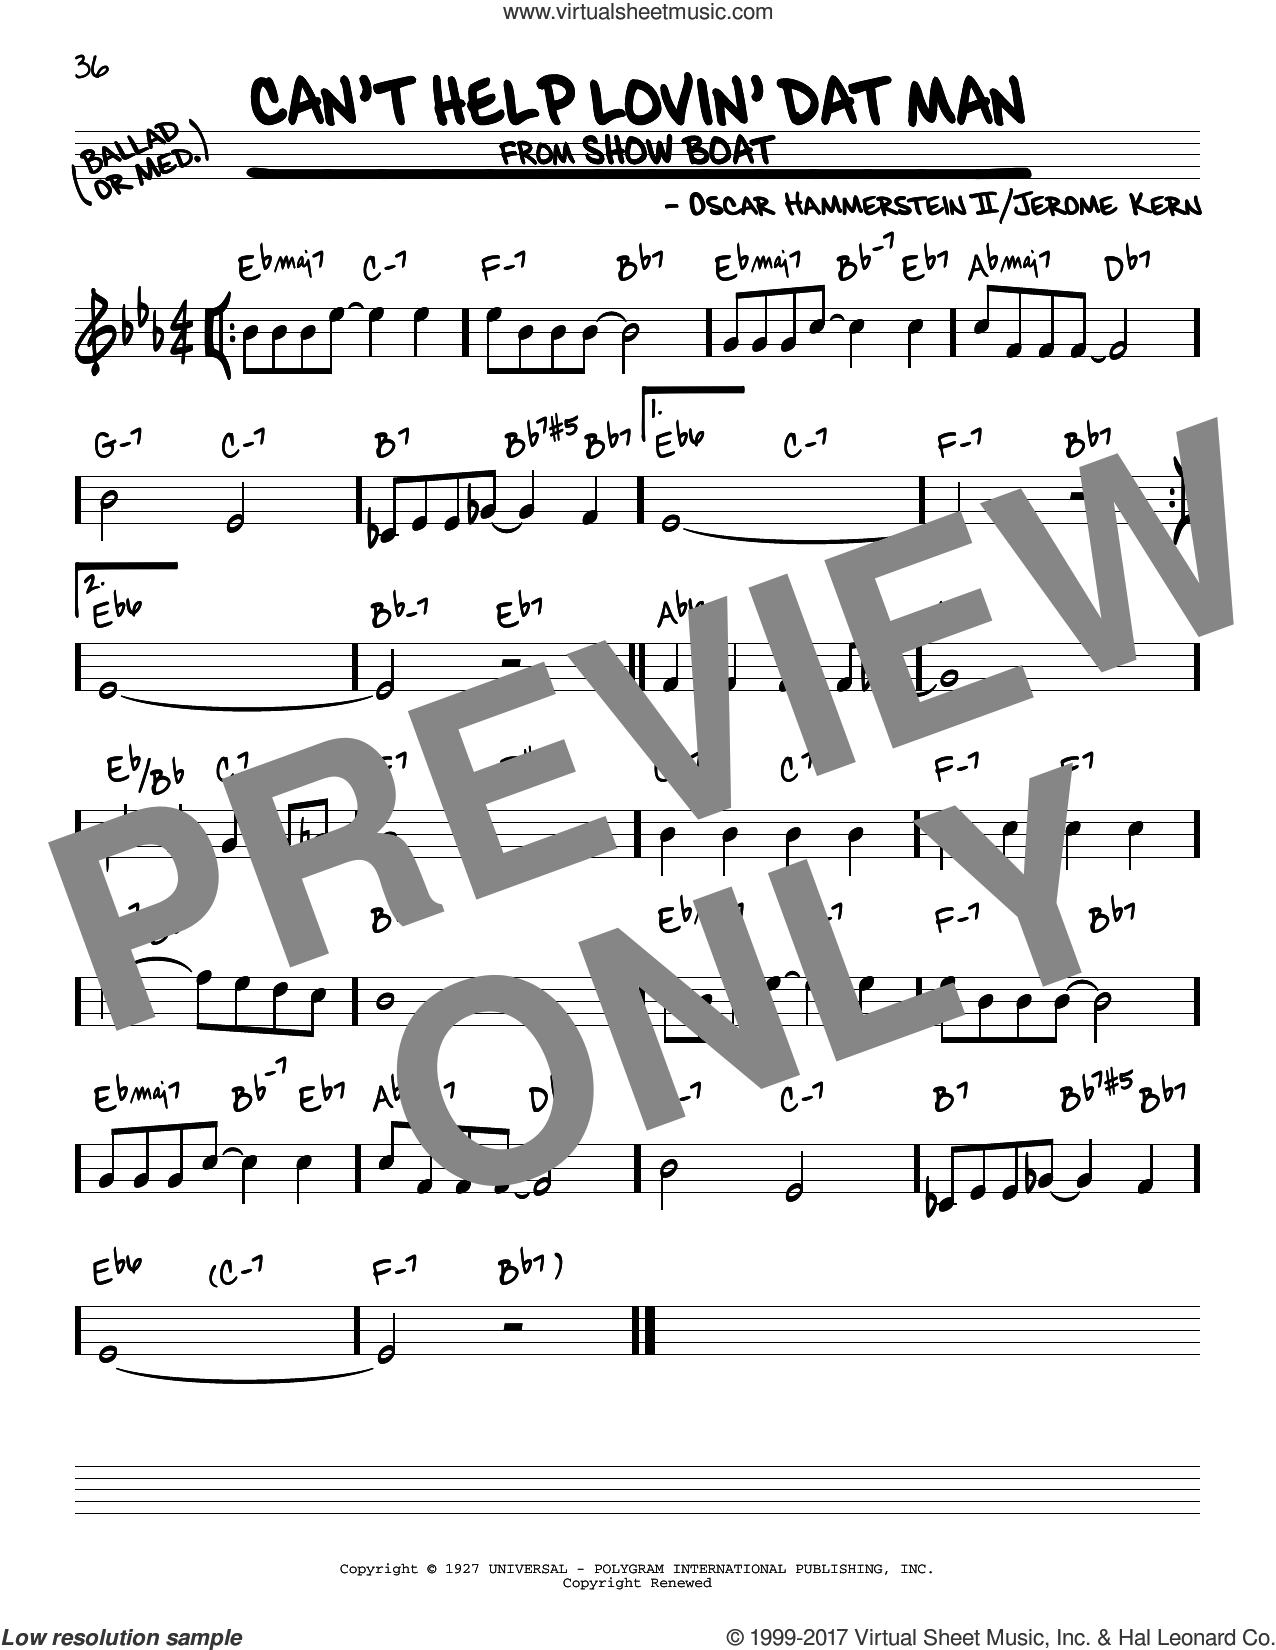 Can't Help Lovin' Dat Man sheet music for voice and other instruments (real book) by Oscar II Hammerstein, Annette Warren, Helen Morgan and Jerome Kern, intermediate skill level